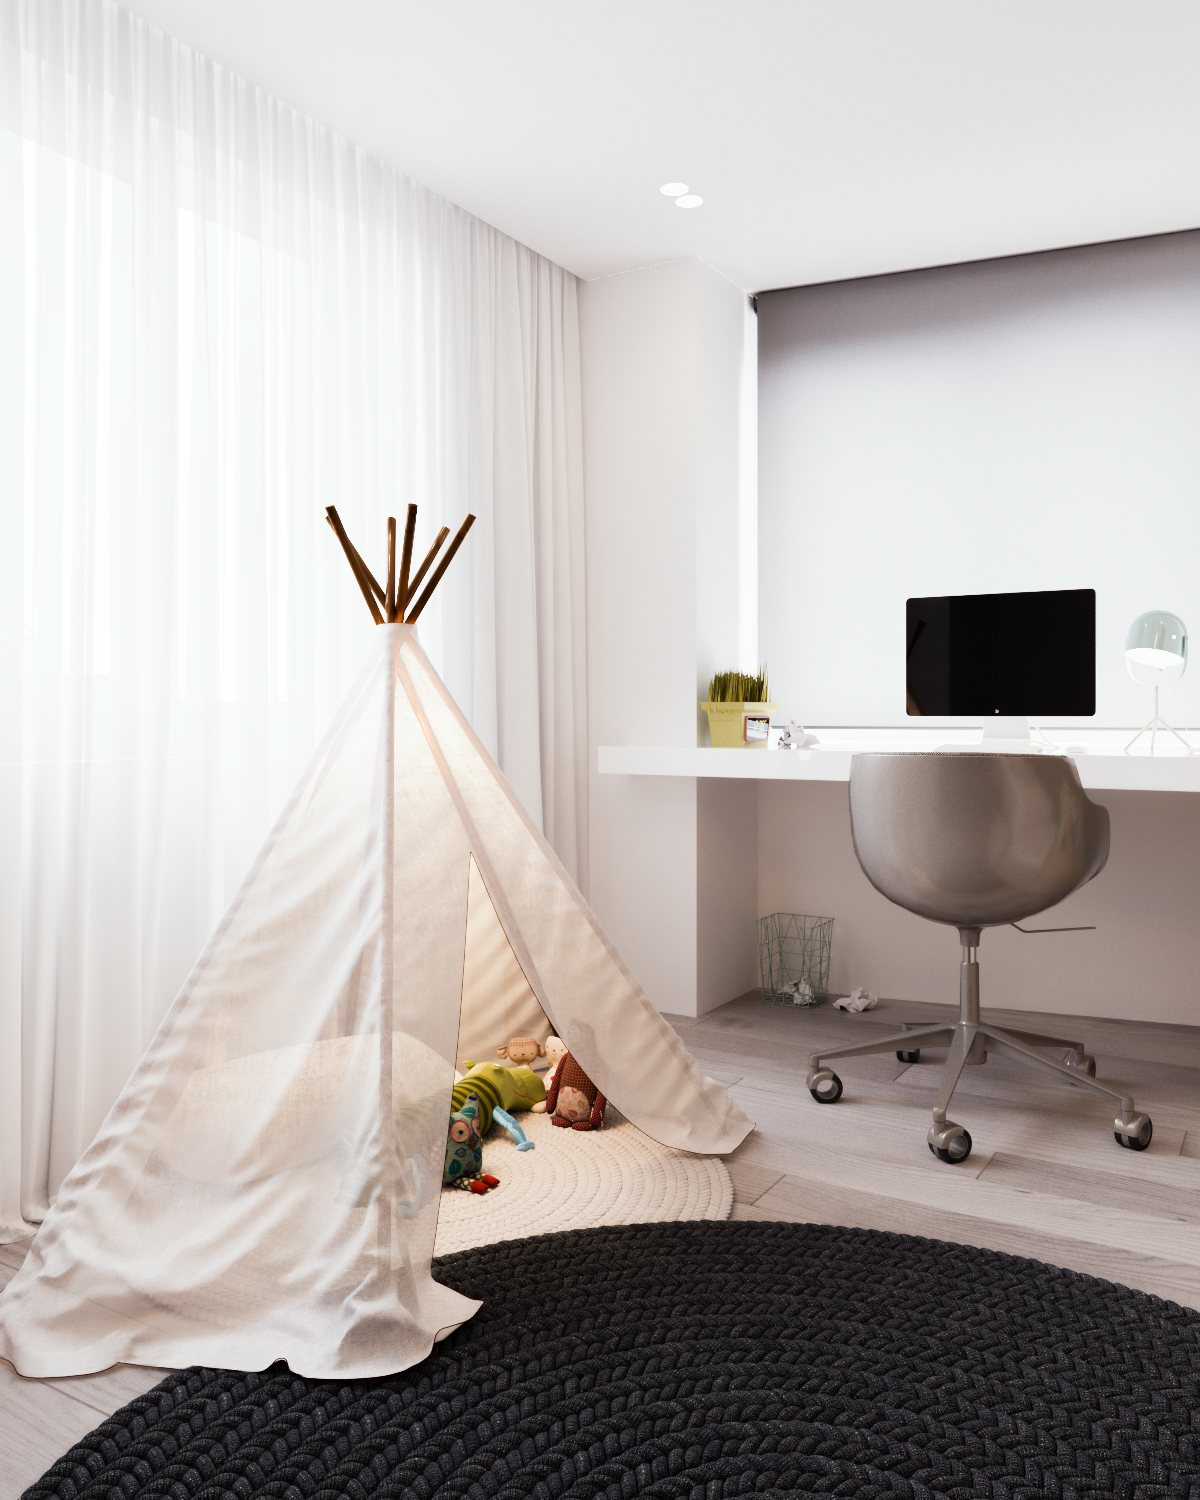 Adorable Tipi Inspiration - A calm and simple family home with neat features